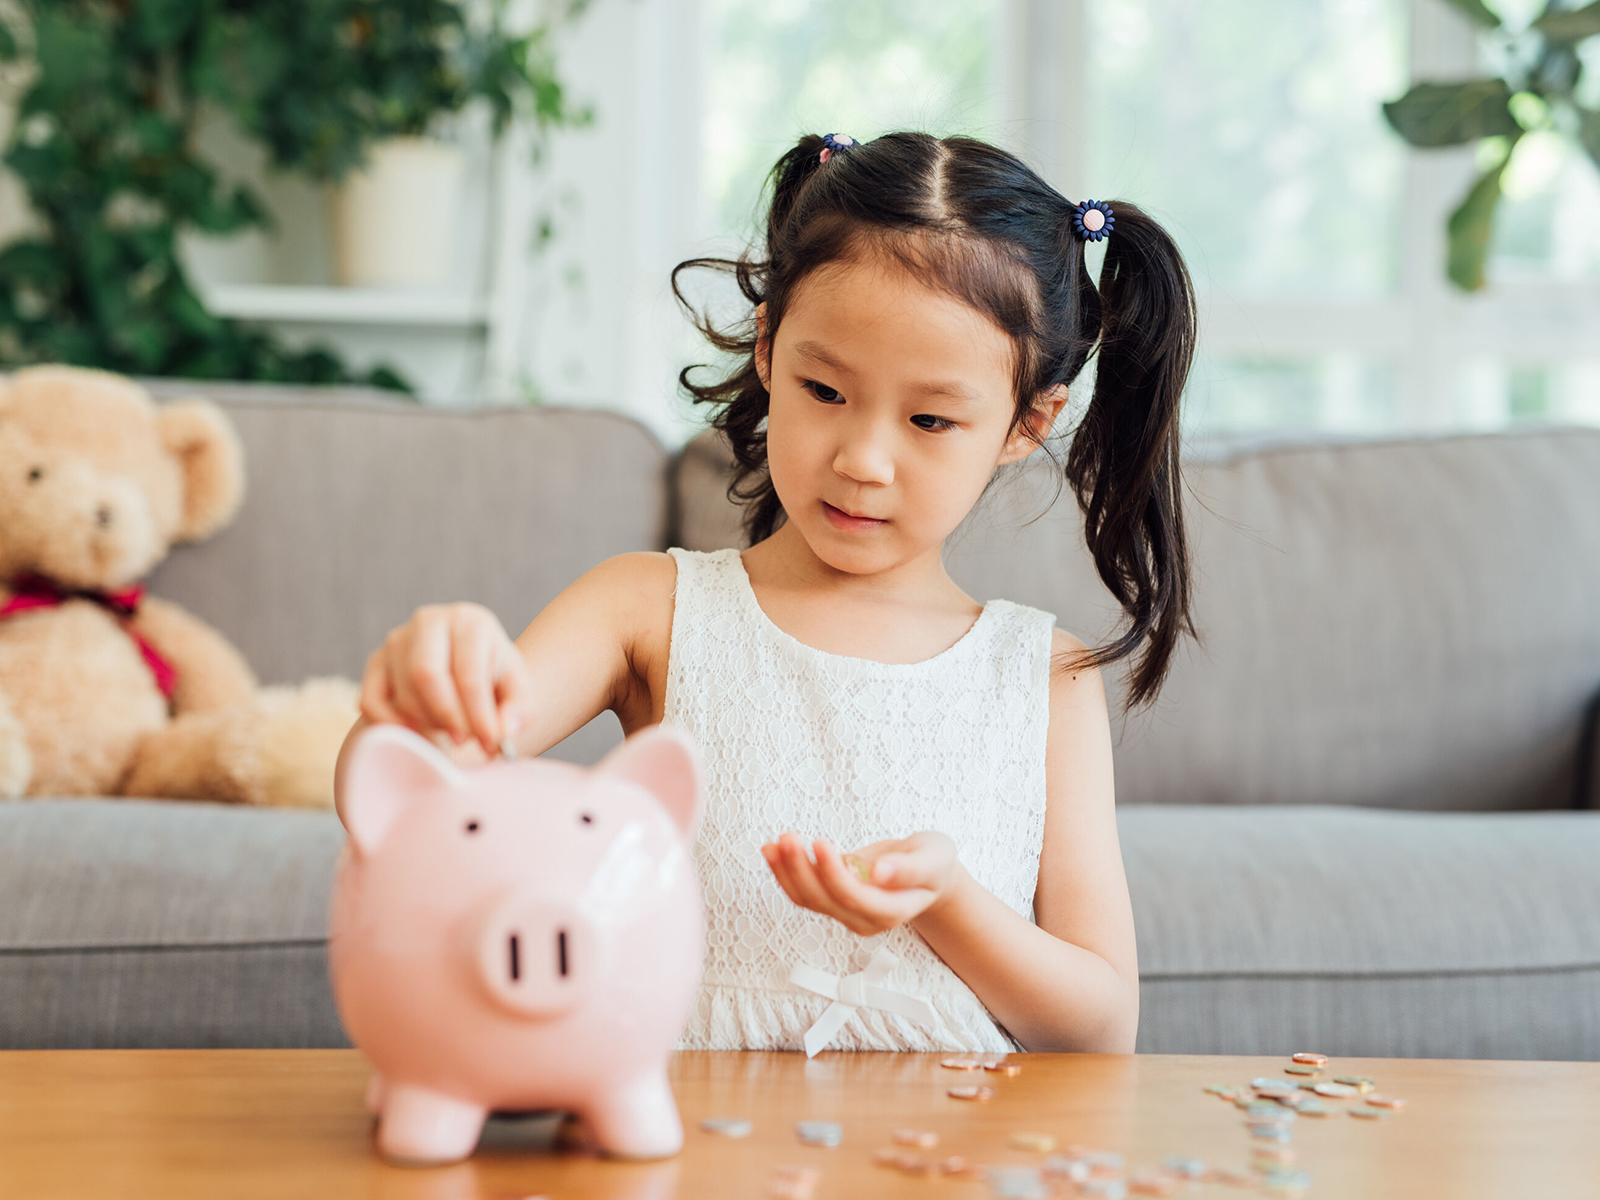 little girl slots coins into her piggy bank